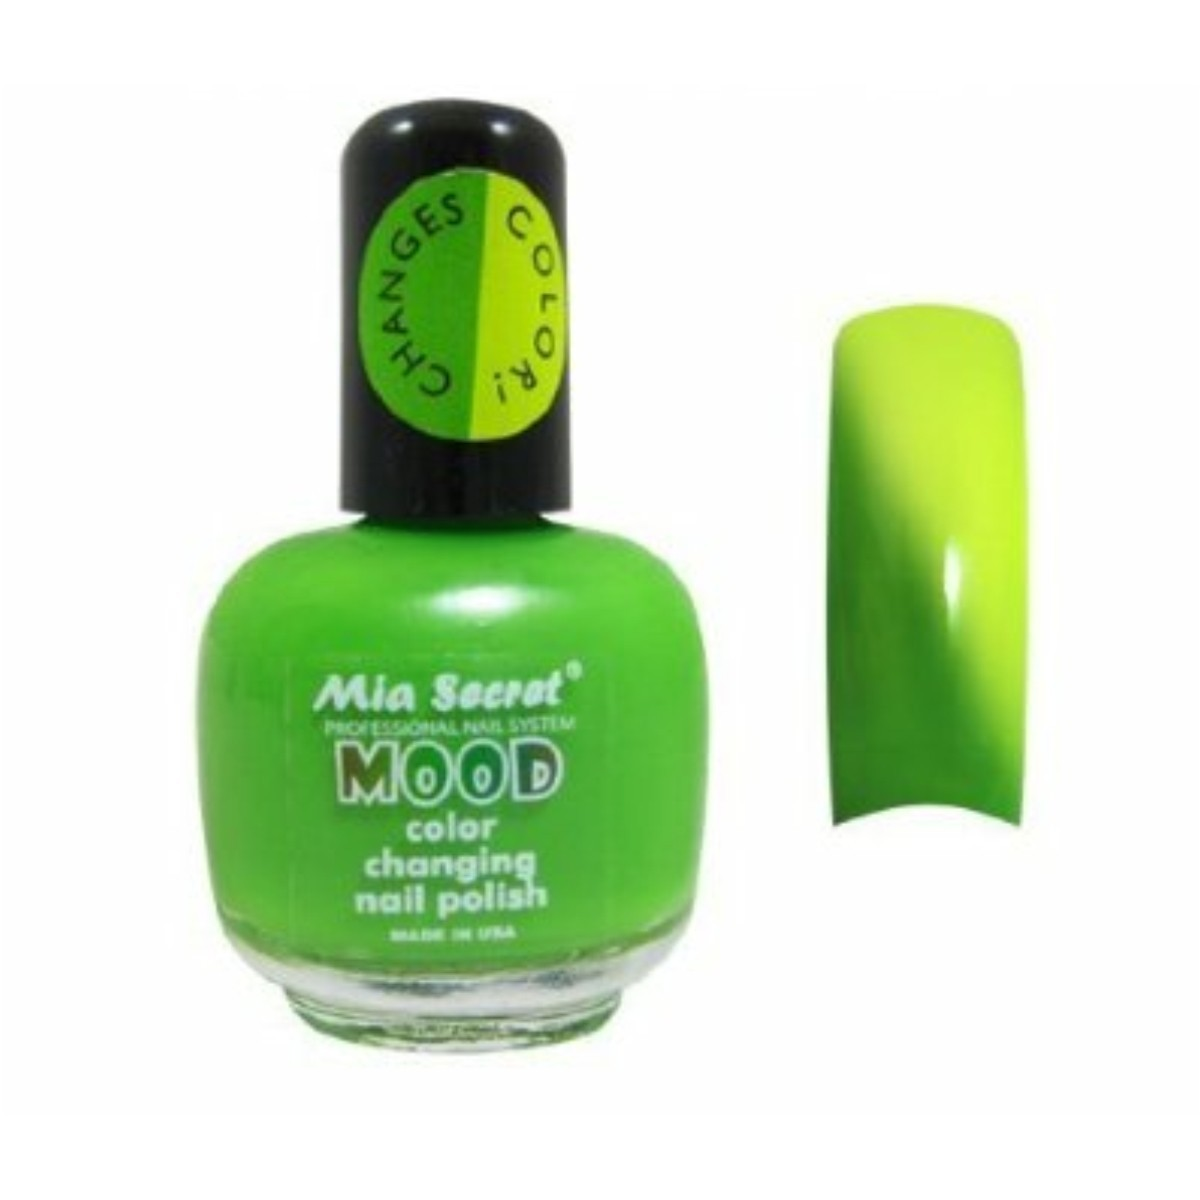 Esmalte para Uñas Mia Secret Mood cambia de color con la temperatura